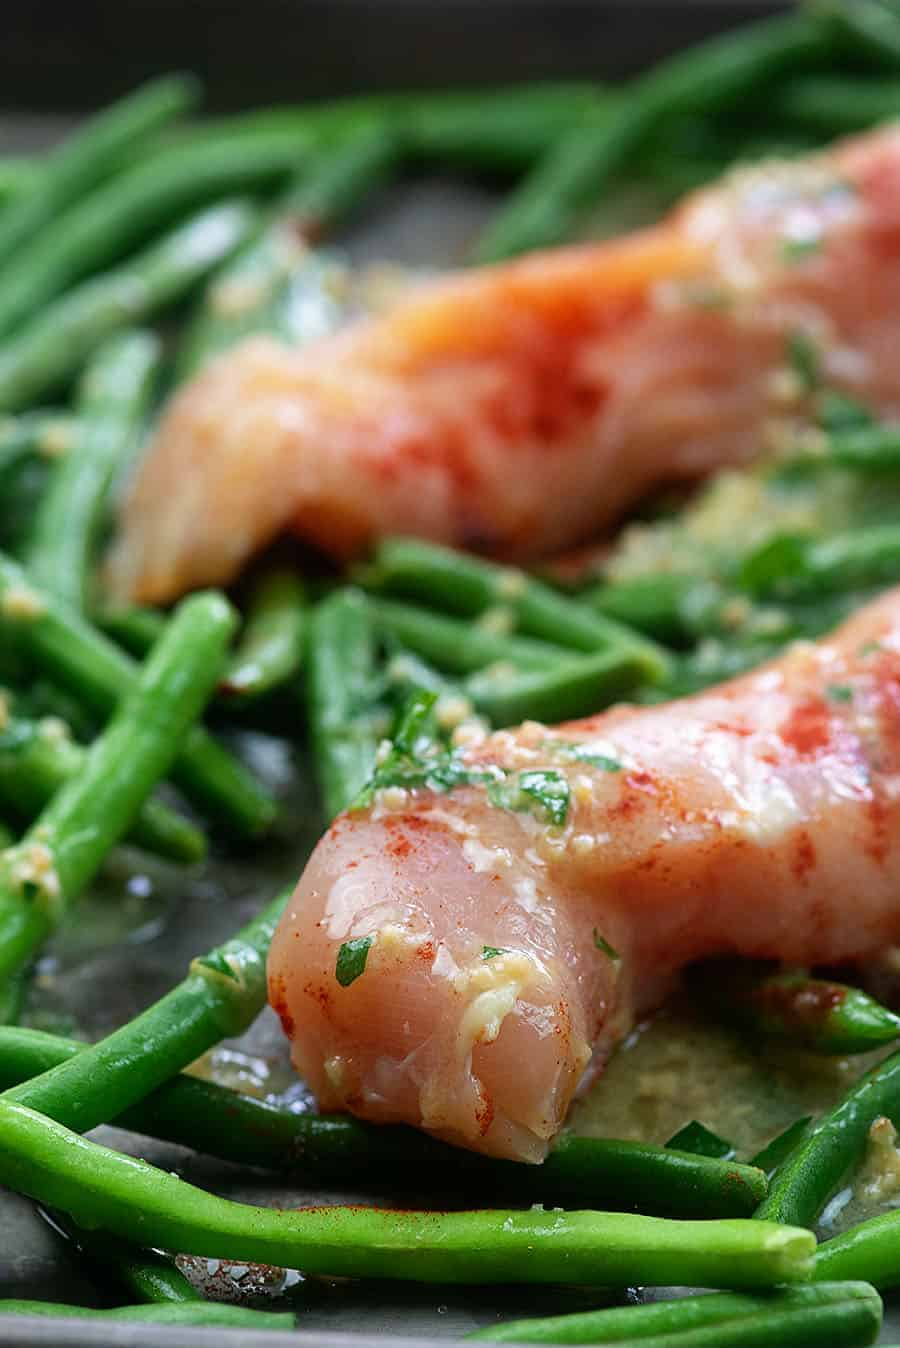 raw chicken and green beans